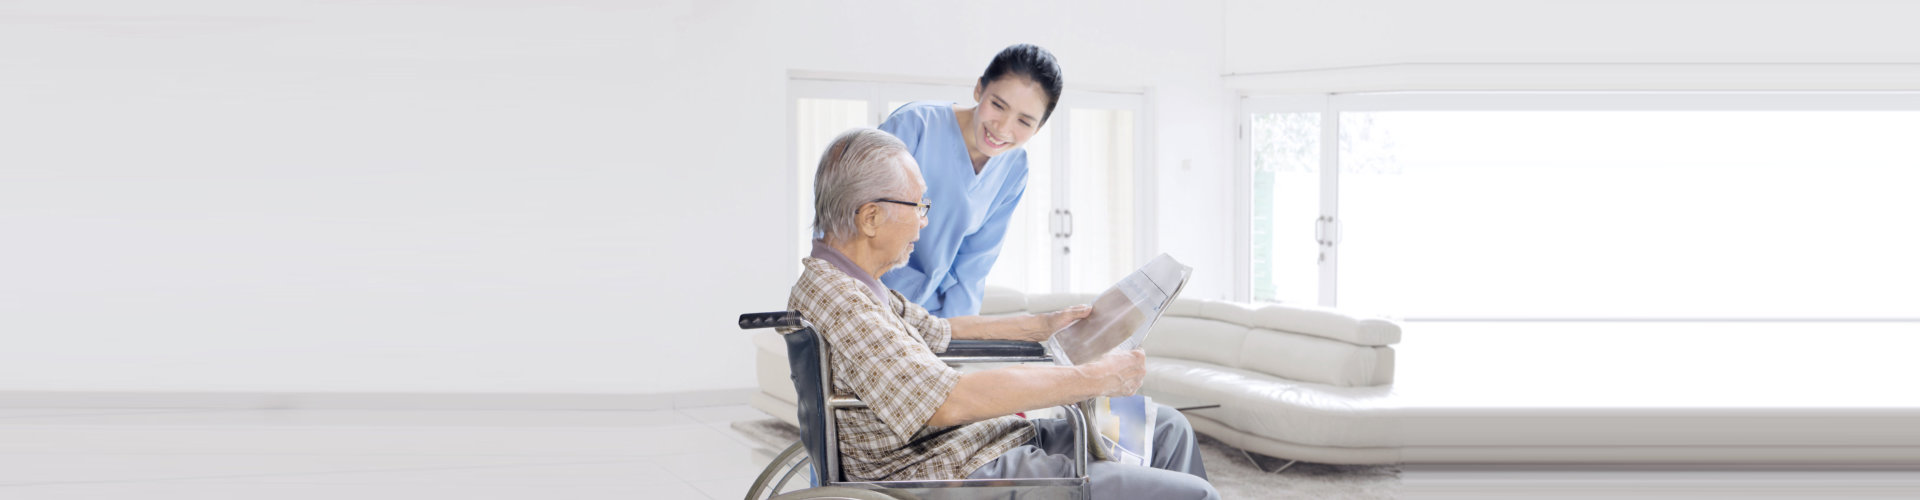 lady caregiver talking with the man on the wheelchair